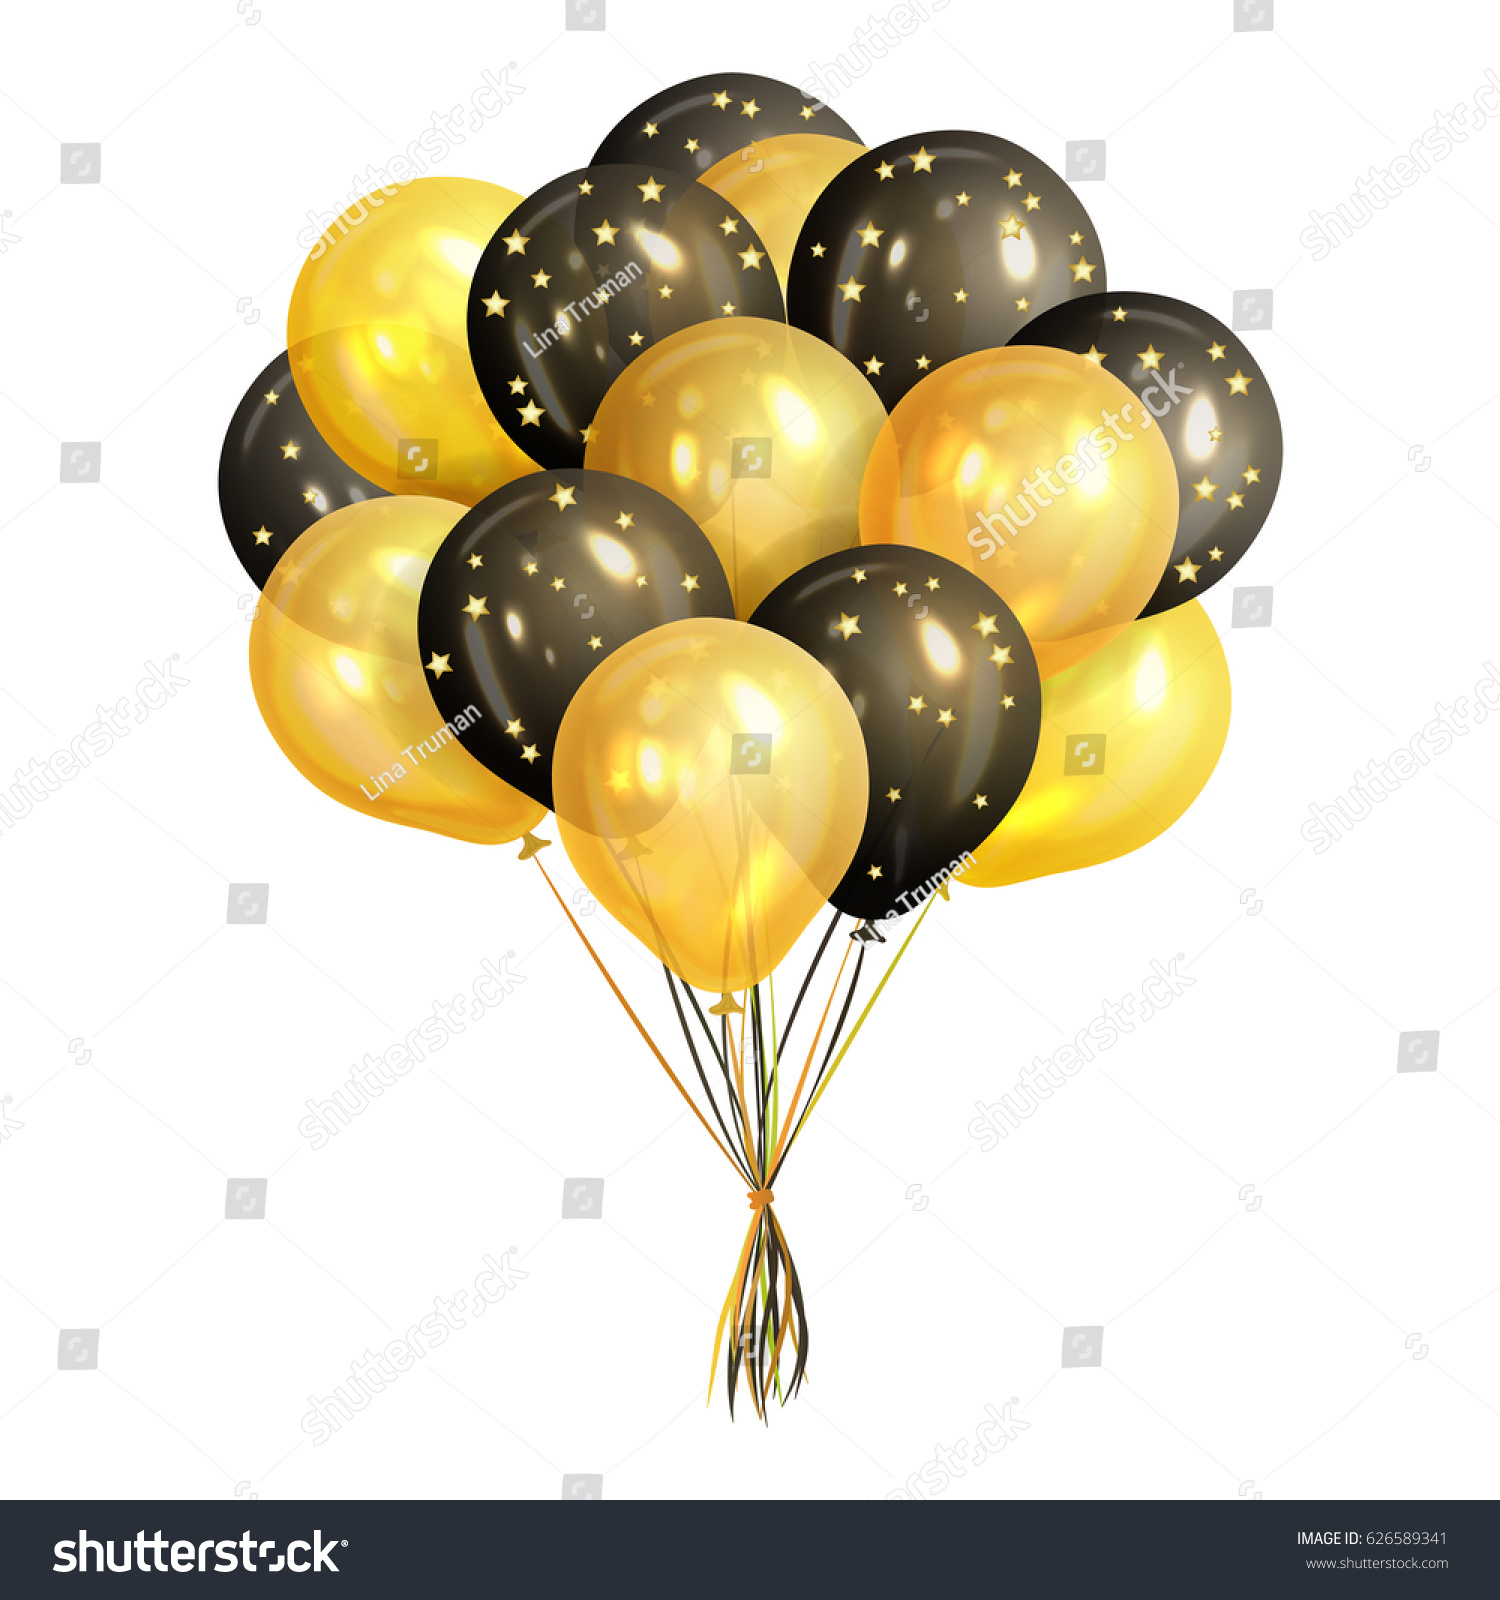 Bunch Of Realistic Black And Gold Helium Balloons Isolated On White Background Party Decorations For Birthday Anniversary Celebration